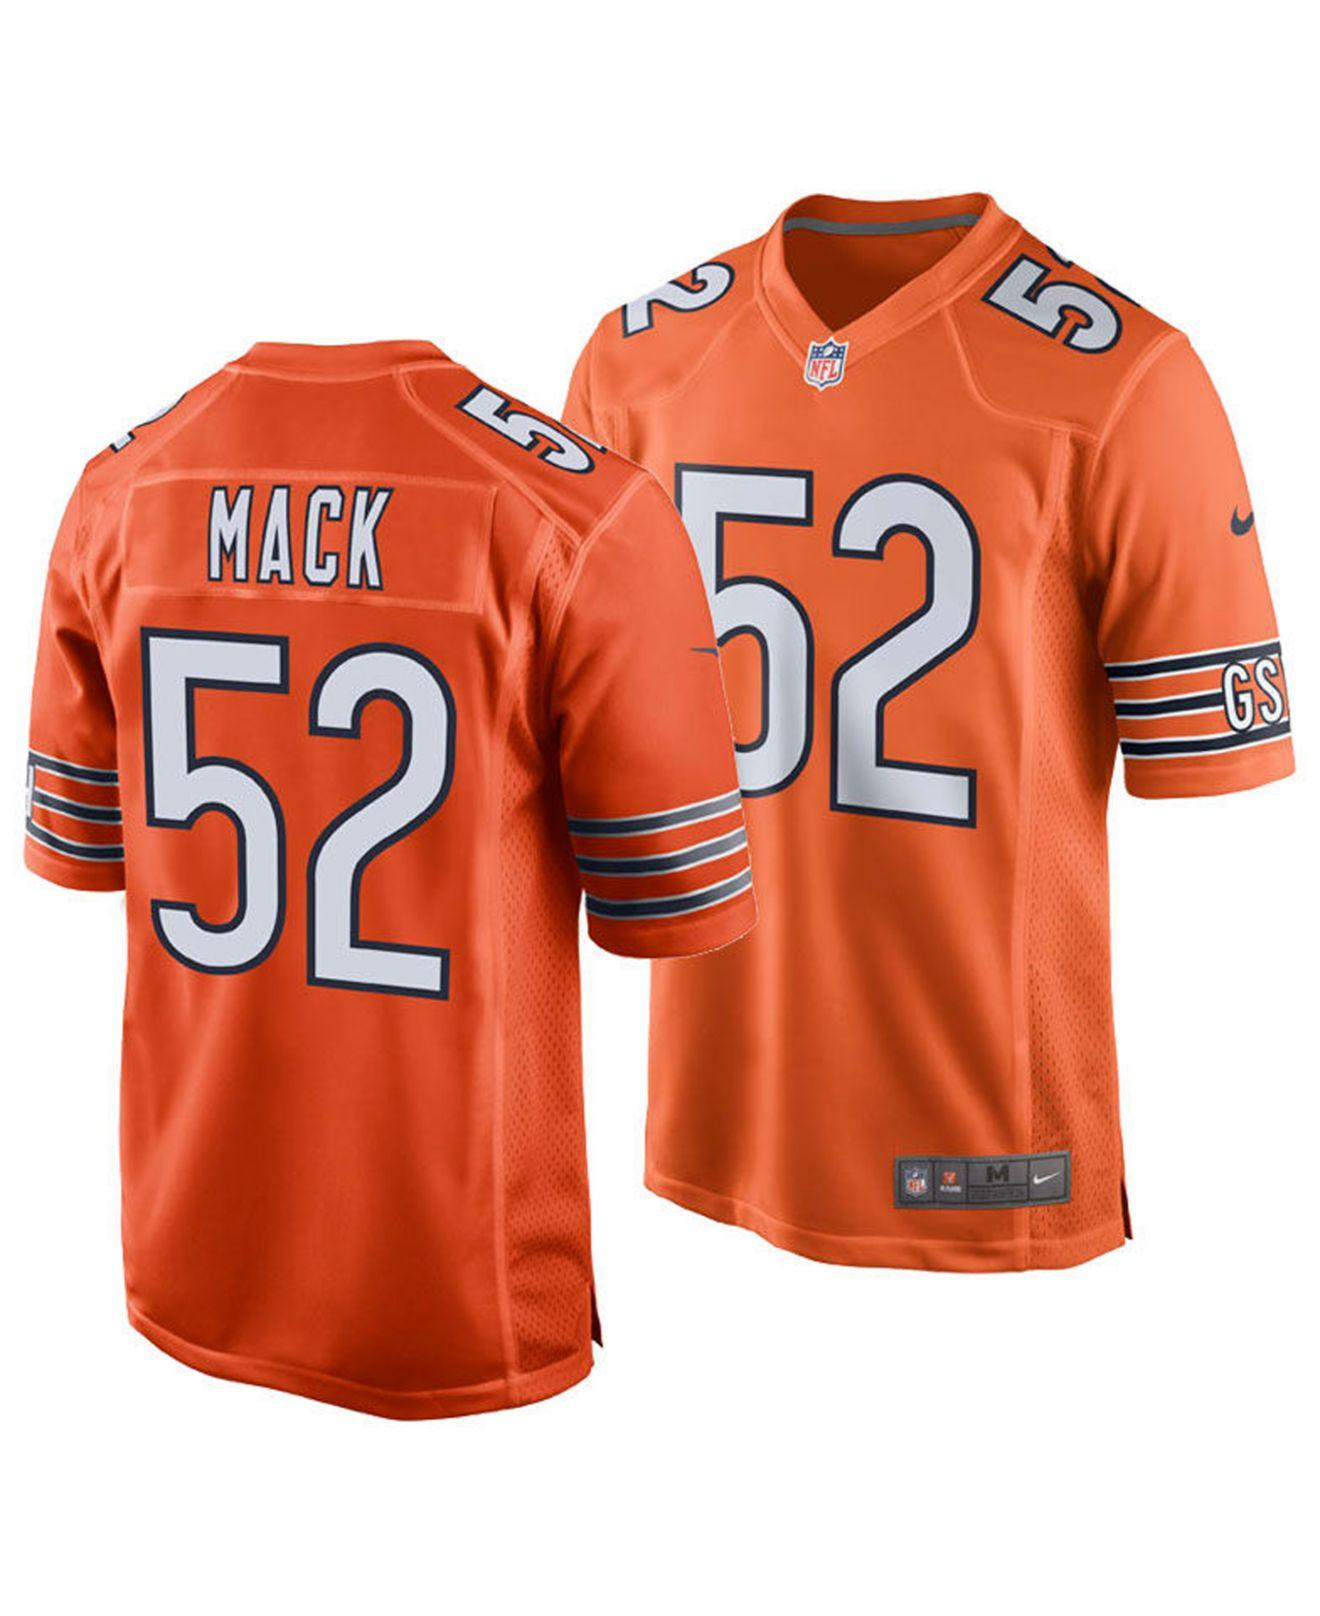 e6a4cb4bb Lyst - Nike Khalil Mack Chicago Bears Game Jersey in Orange for Men